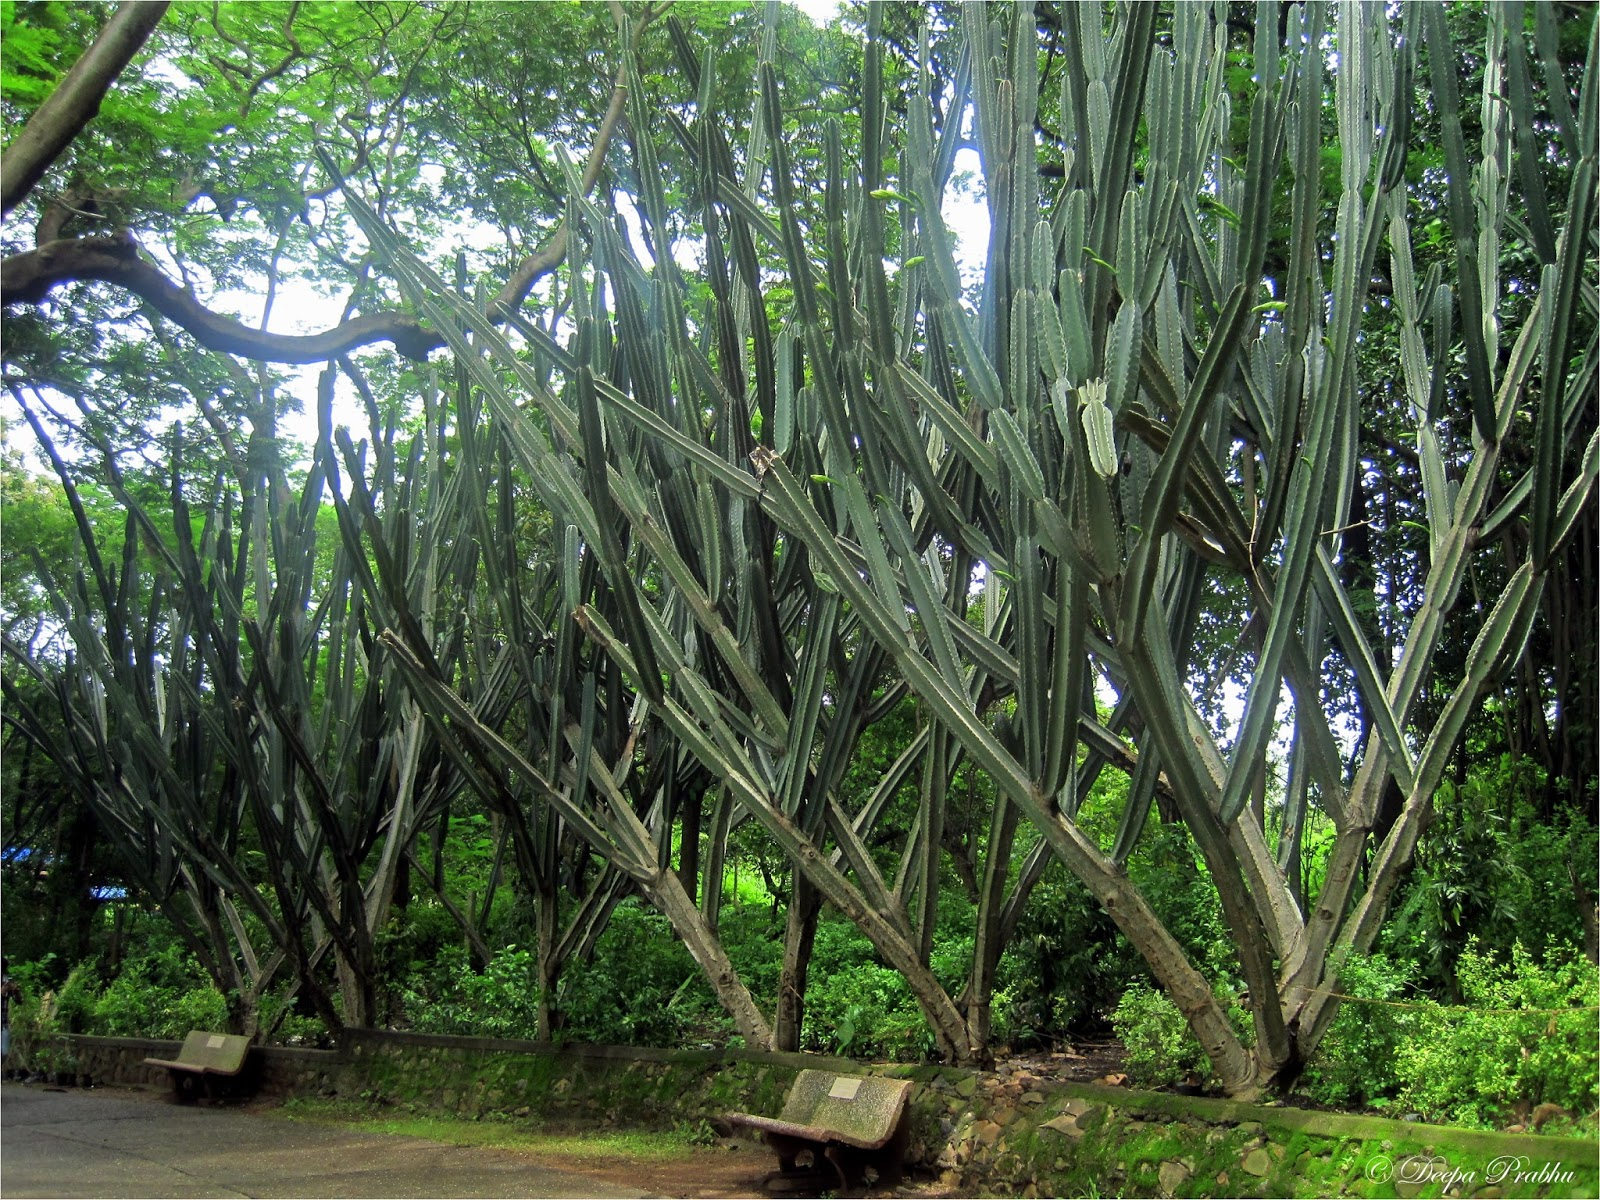 This Weekend We Visited Chota Kashmir Garden I Was Amazed To See Such Huge Cactus Trees Sharing The Photo Captured